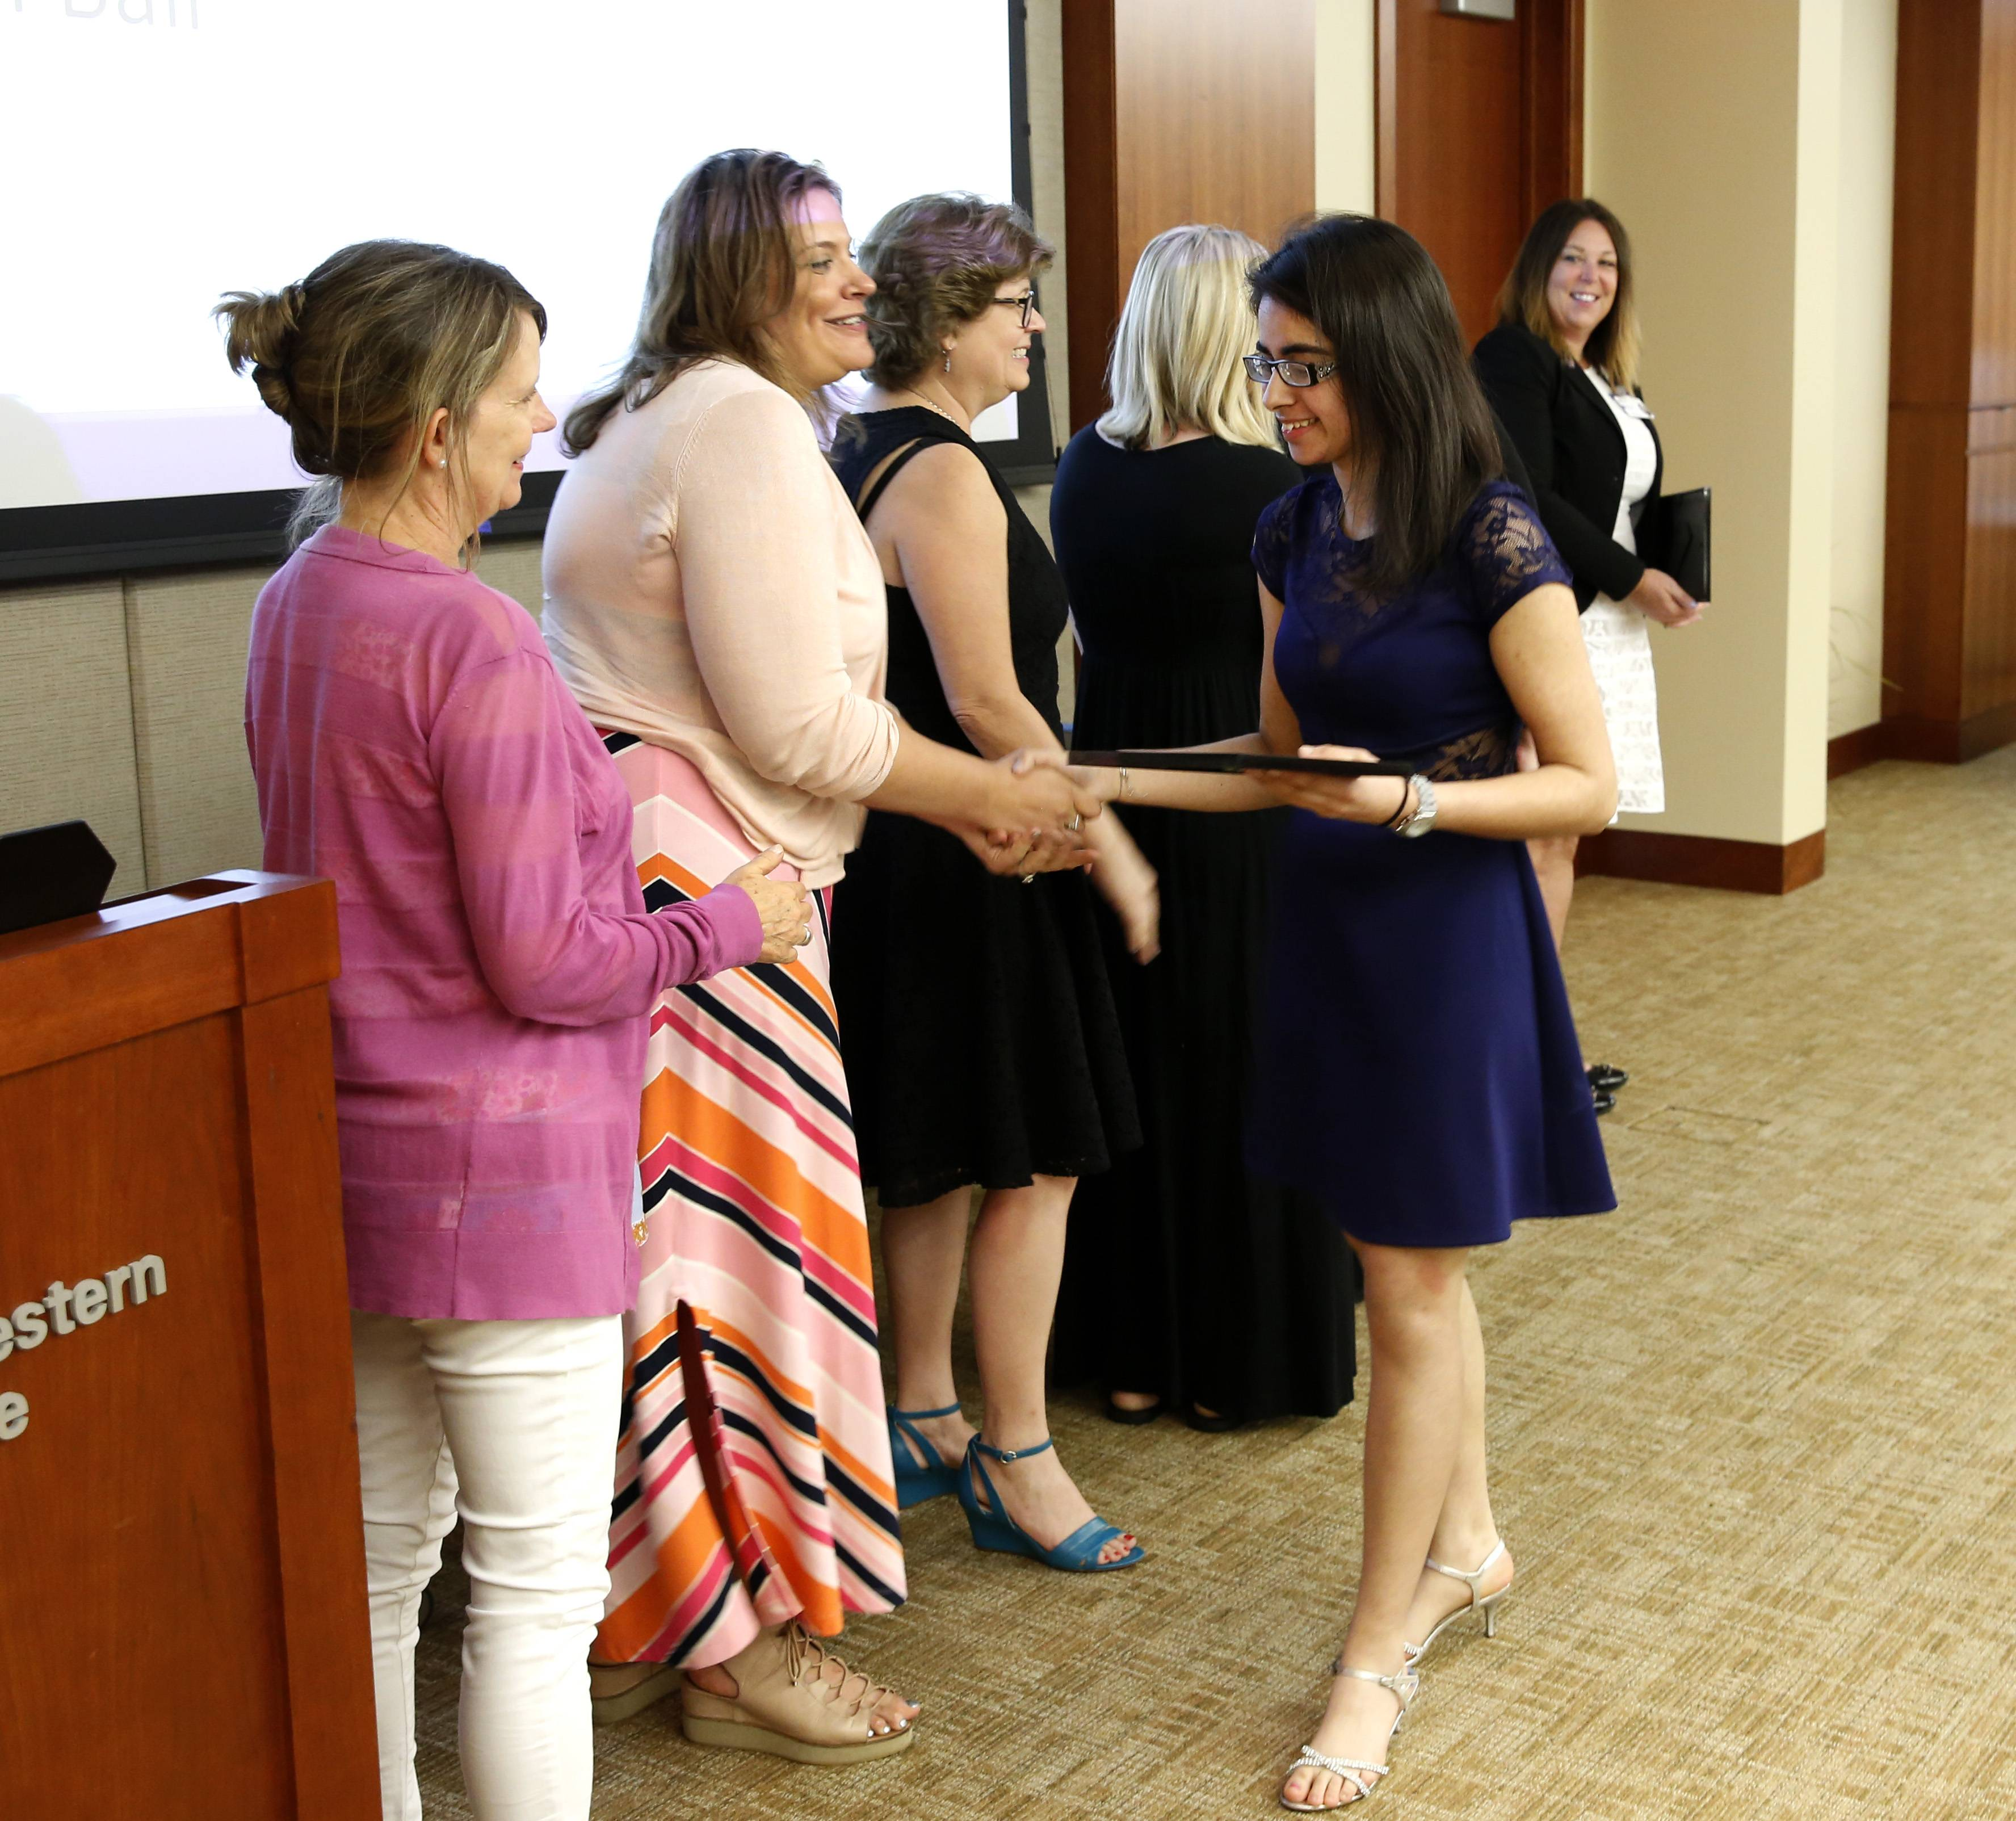 Rachel Bali collects her diploma as a 2018 graduate of the Project SEARCH job training program at Central DuPage Hospital.